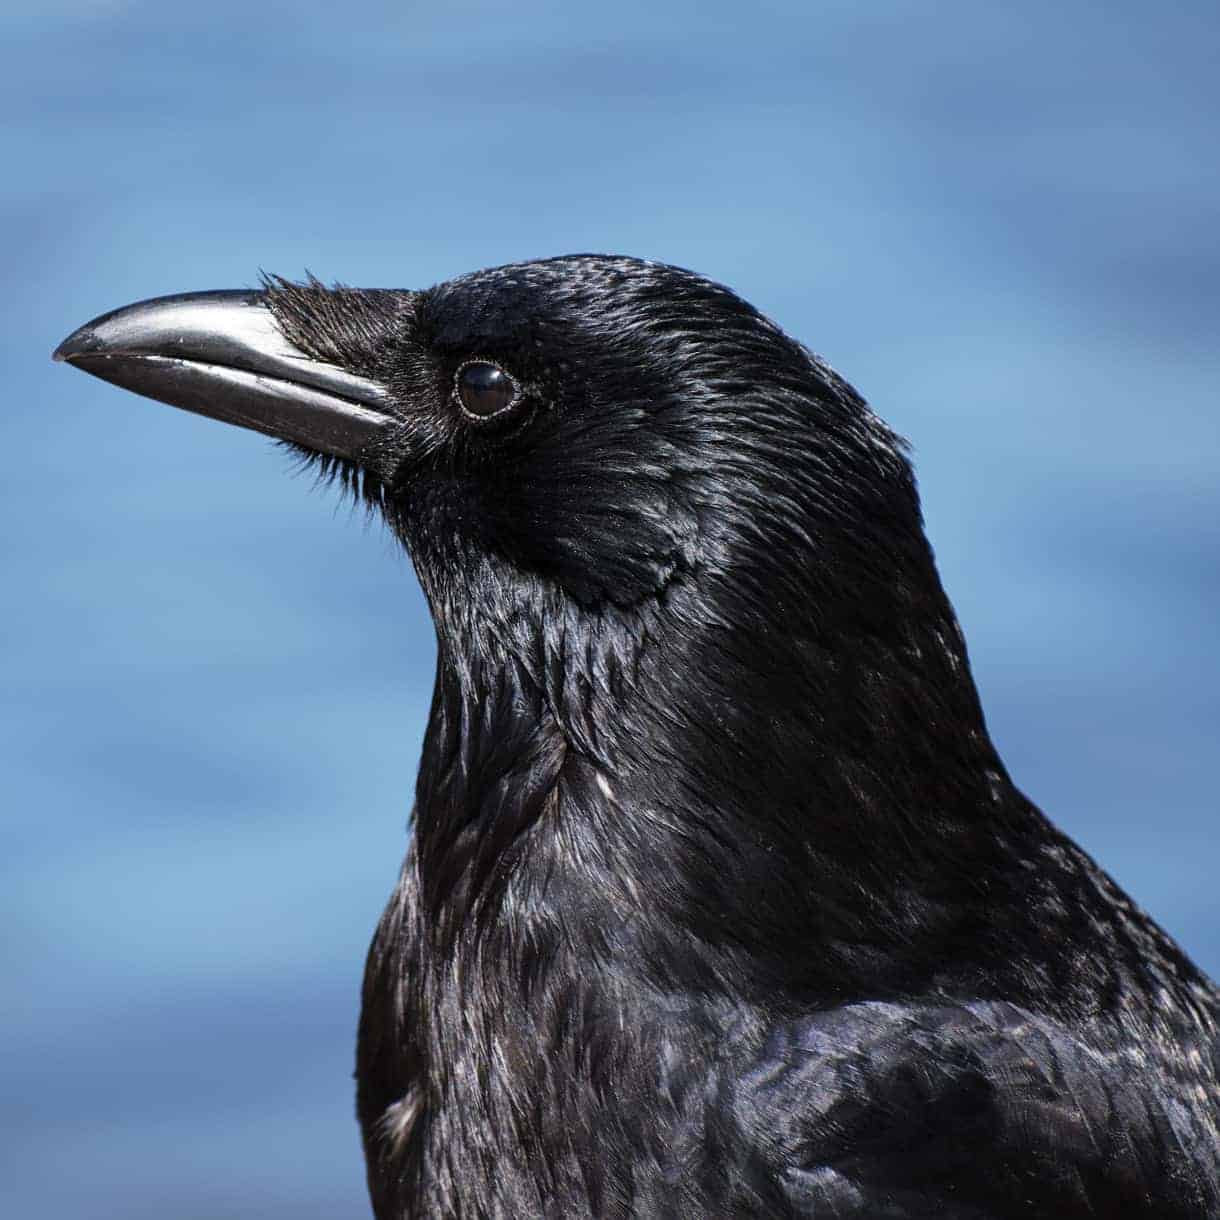 All about the Carrion crow